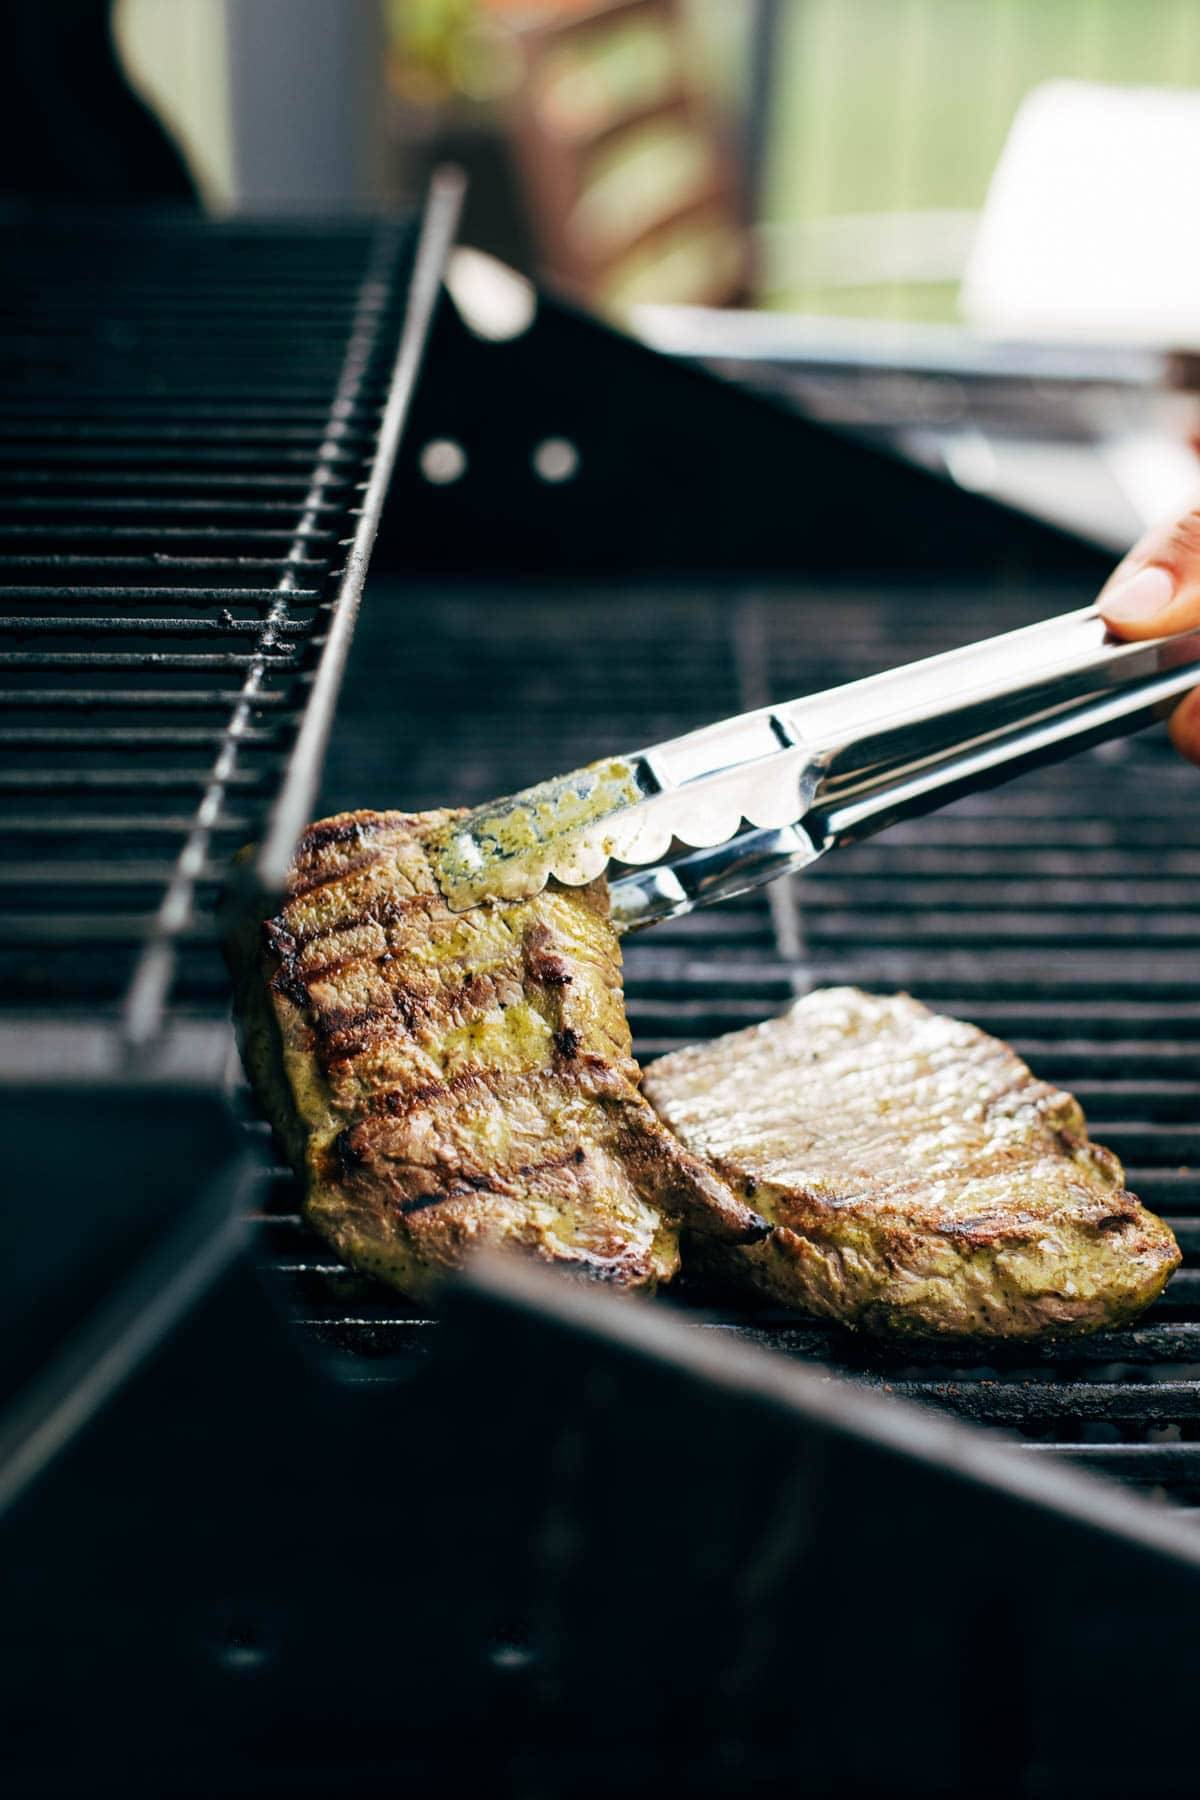 Steak on the grill.